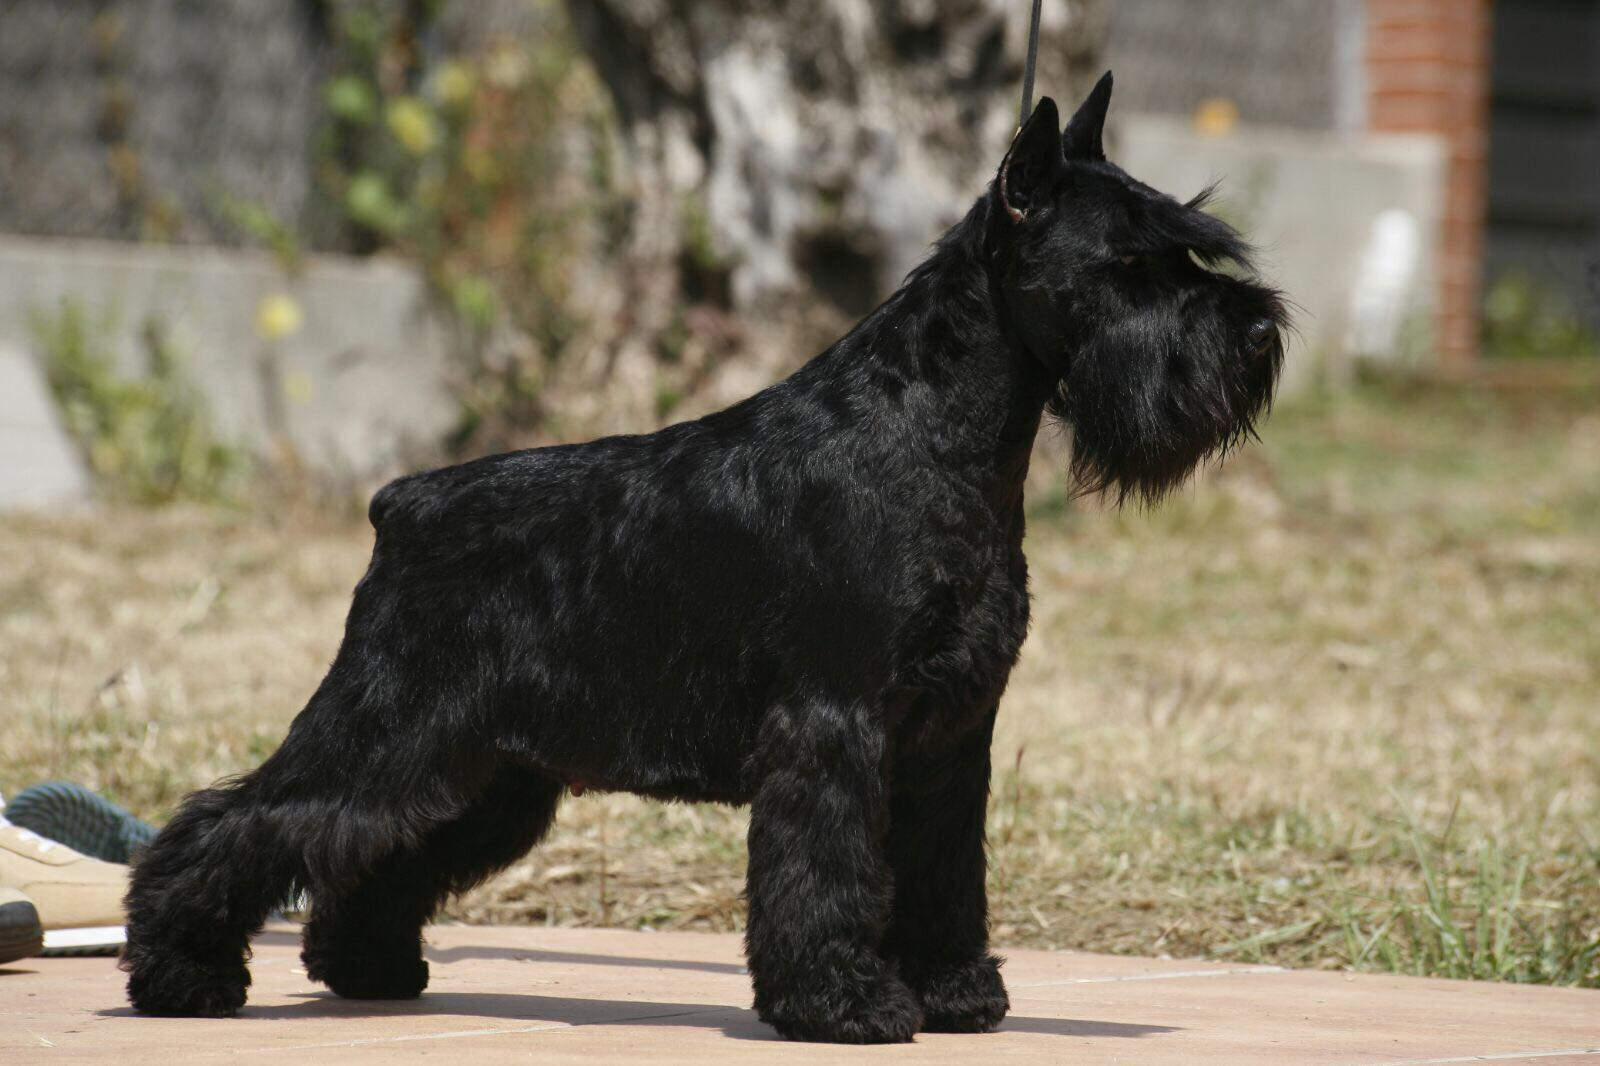 ISPU JCh. Astra Fortunata Ginger Berry de Can Rayo-Black Miniature Schnauzer